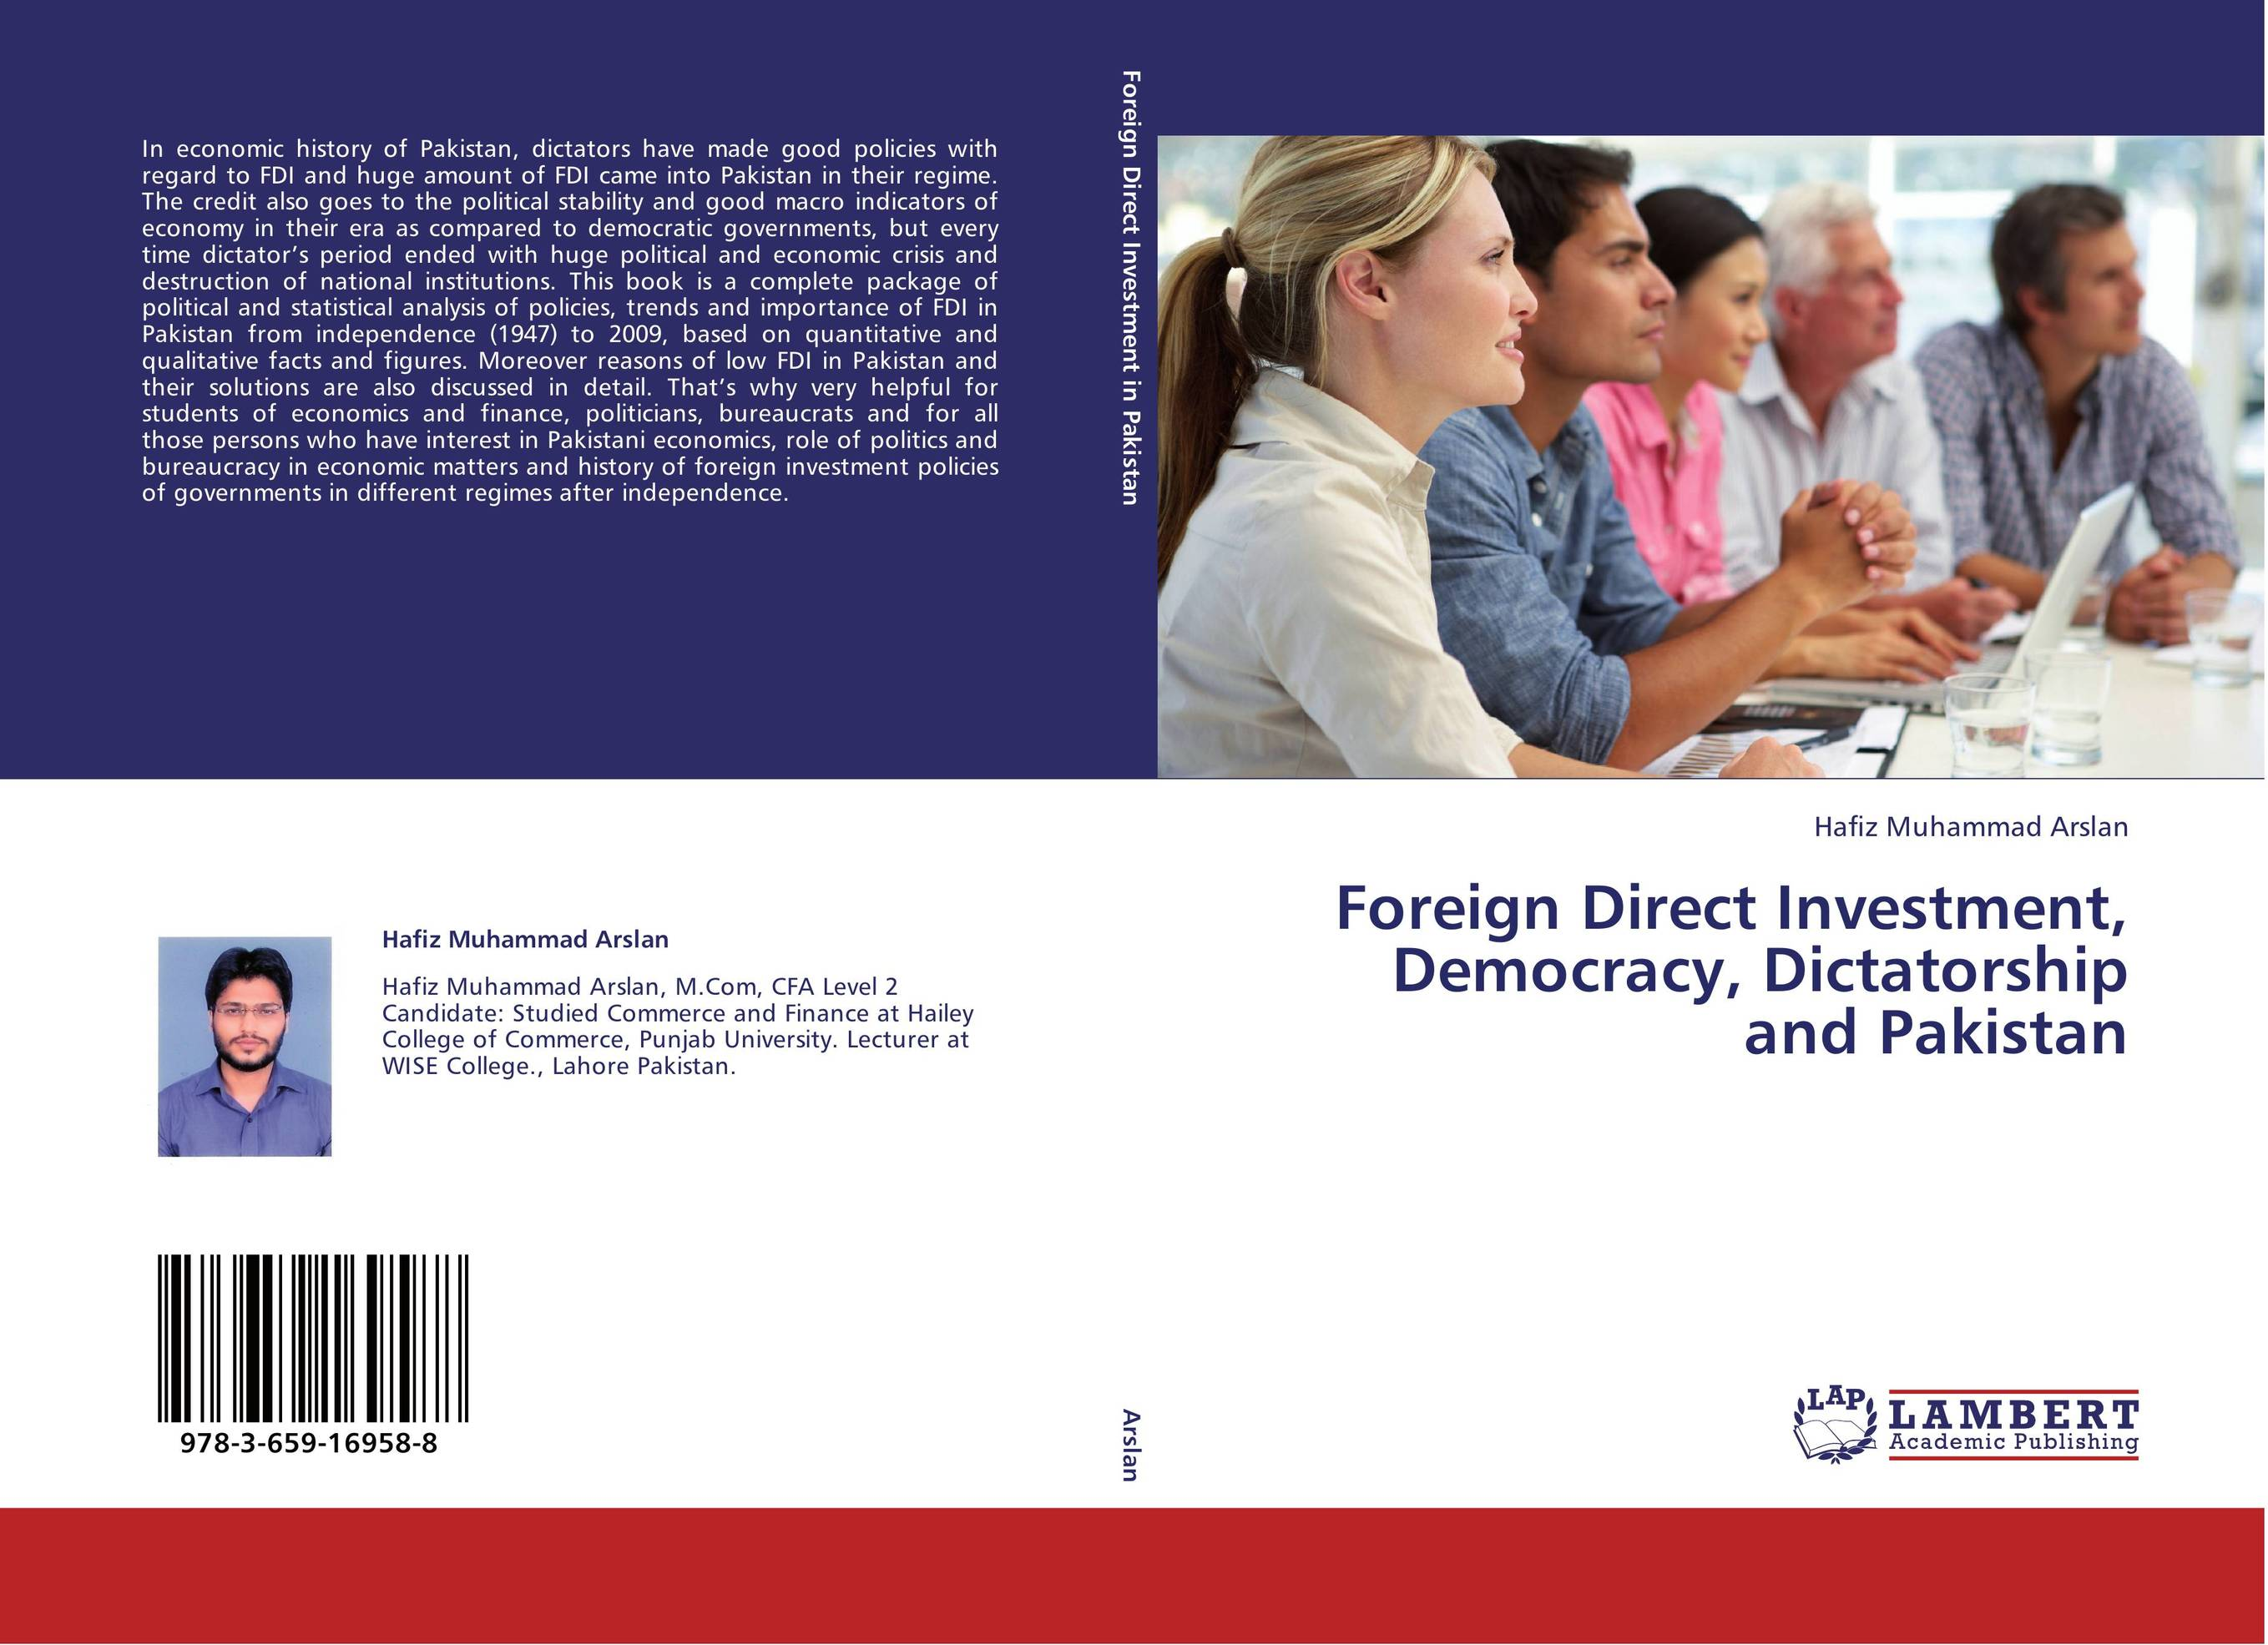 Foreign Direct Investment, Democracy, Dictatorship and Pakistan foreign aid and social sector of pakistan